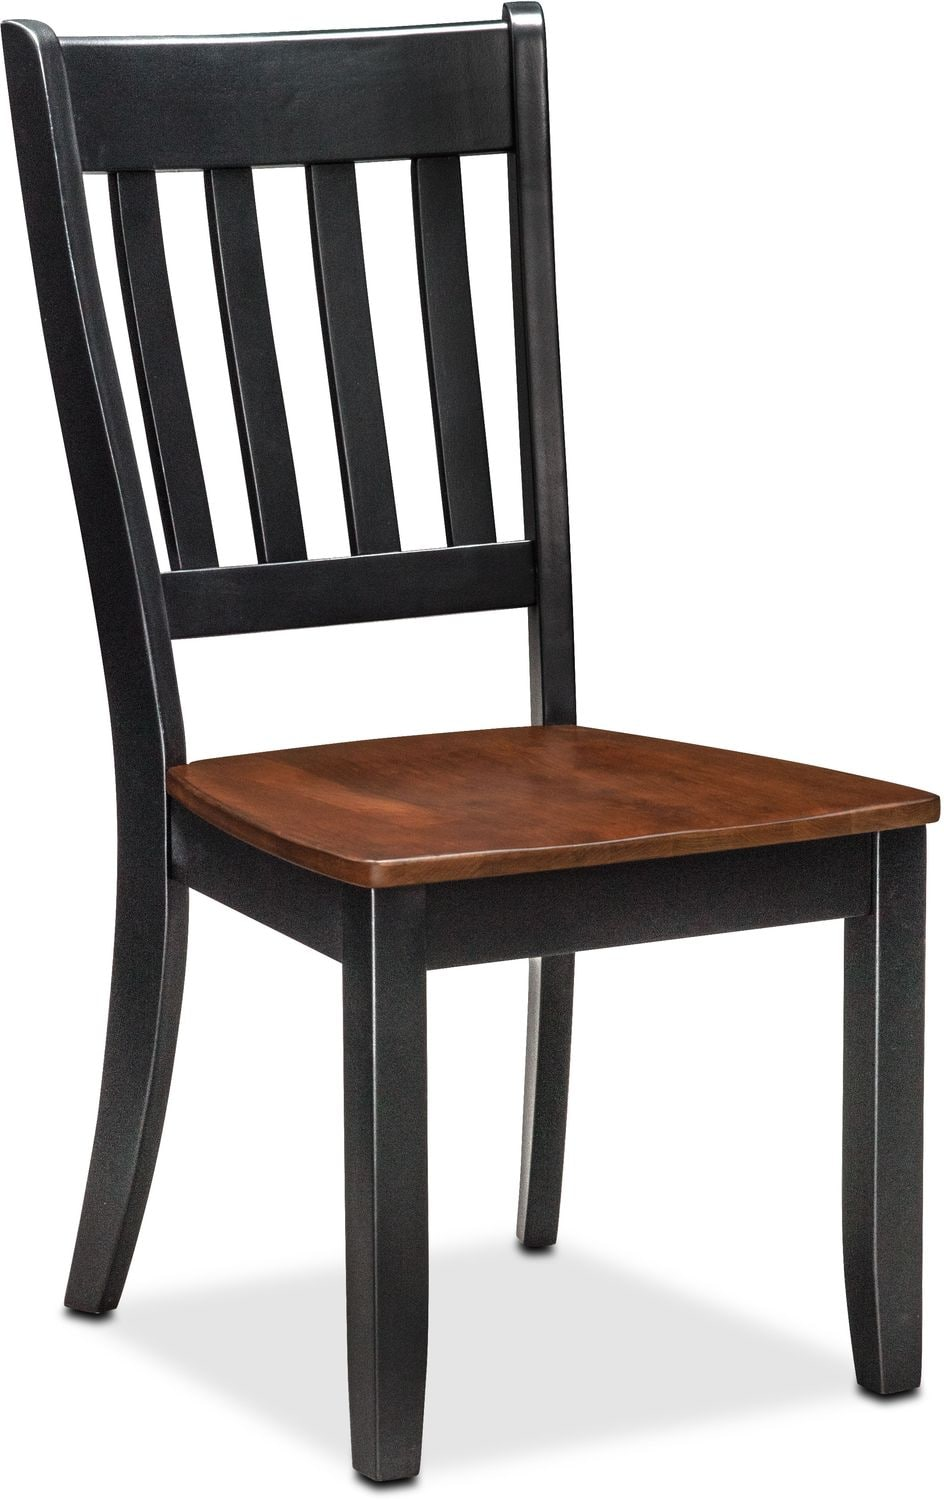 Dining Room Furniture - Nantucket Slat-Back Chair